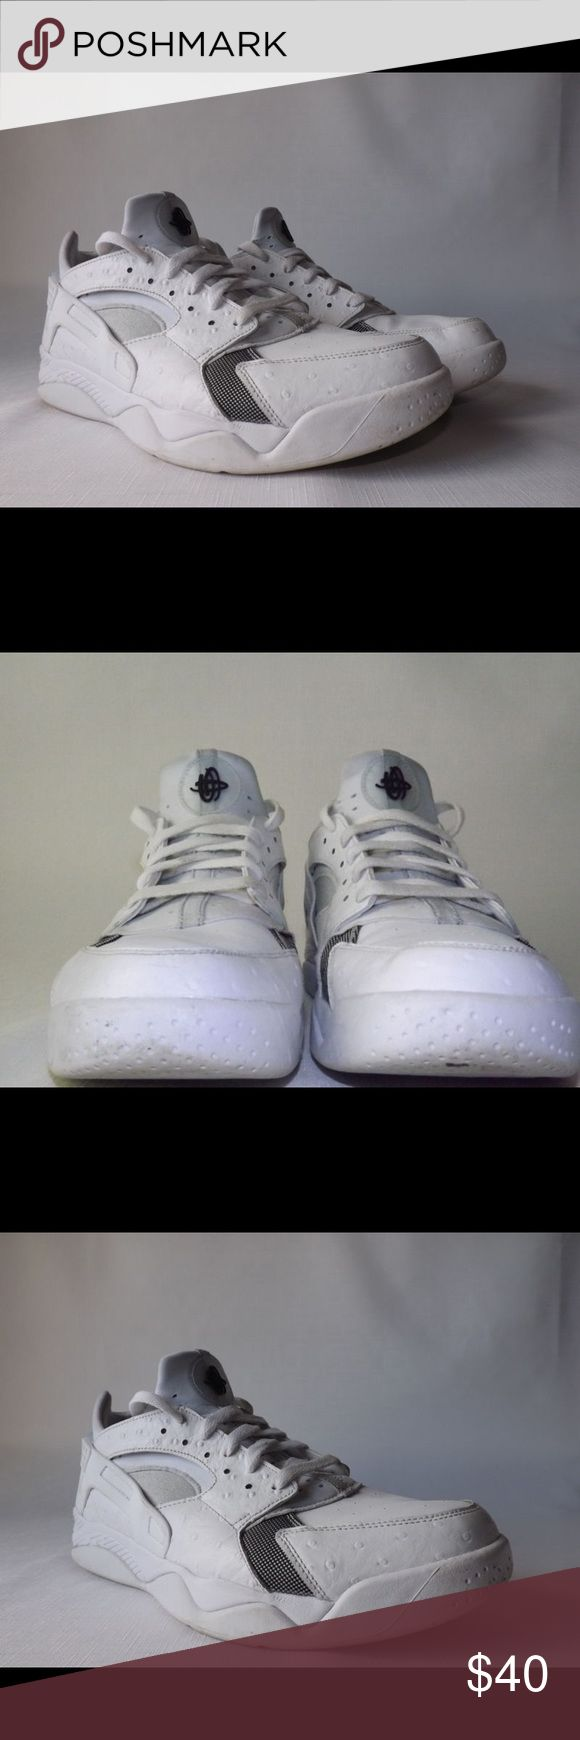 Nike Air Huarache White Ostrich 10.5 Fits more like a 10, worn a few times. ABSOLUTELY NO TRADES Nike Shoes Sneakers